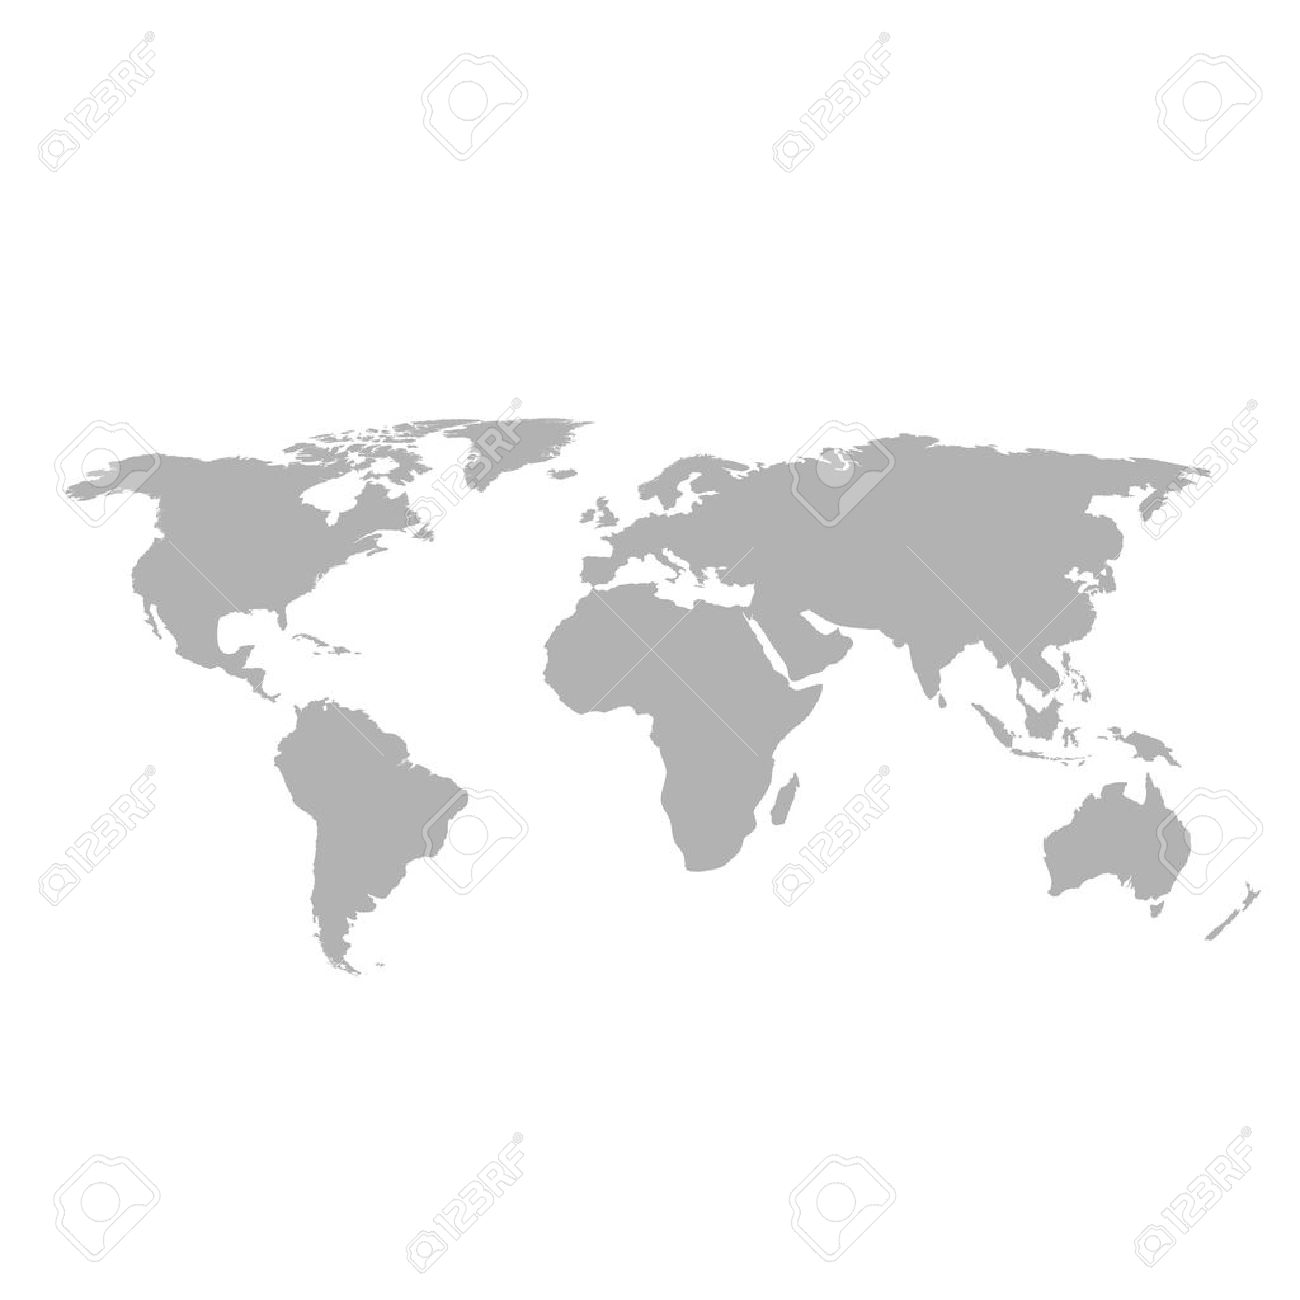 40204 world map flat cliparts stock vector and royalty free gray world map on white background illustration gumiabroncs